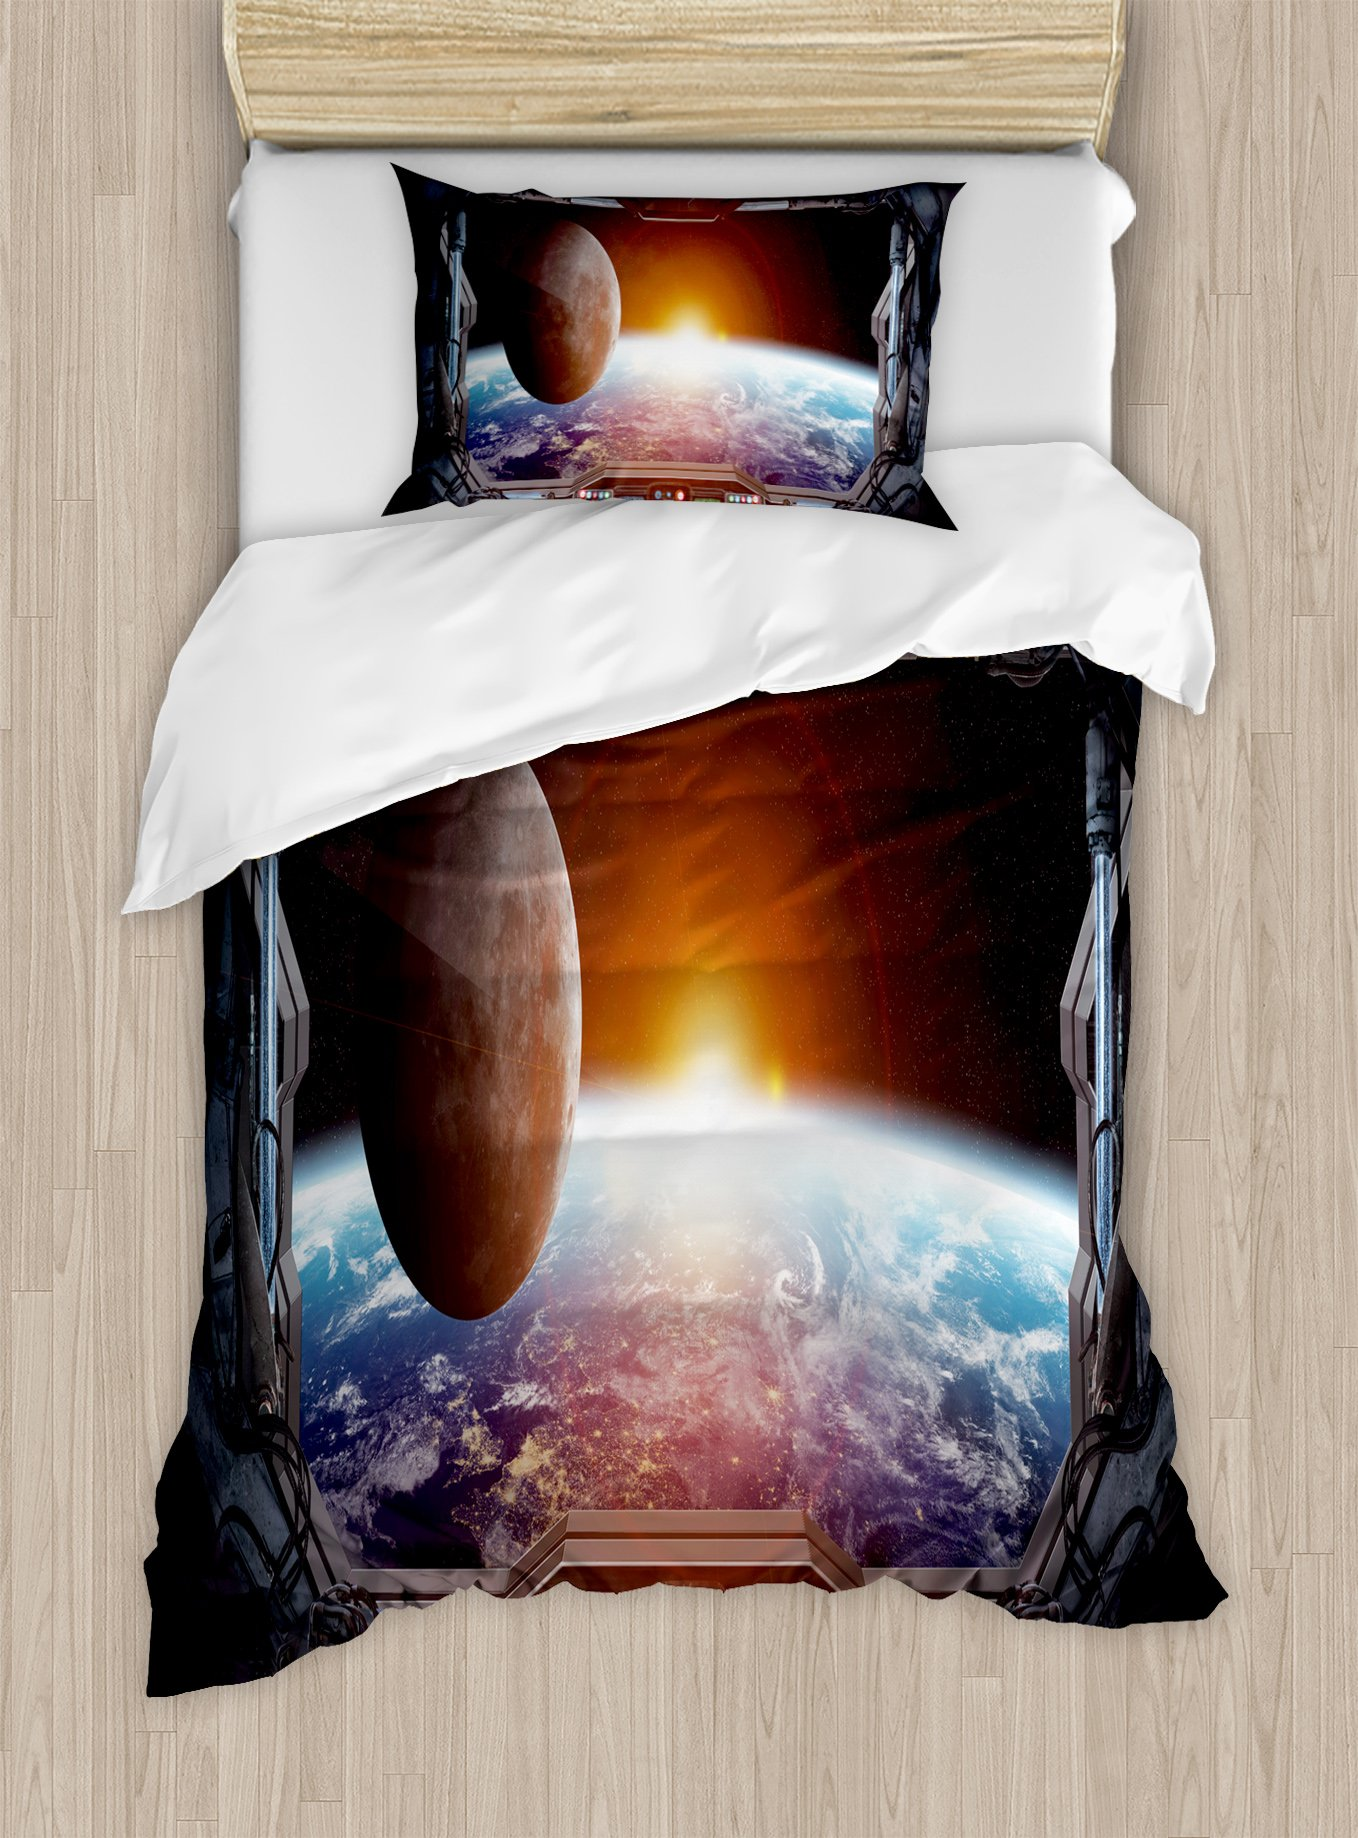 Ambesonne Outer Space Duvet Cover Set Twin Size, Window View from Spaceship Station to Universe Celestial Discovery Fiction Art, Decorative 2 Piece Bedding Set with 1 Pillow Sham, Grey Black